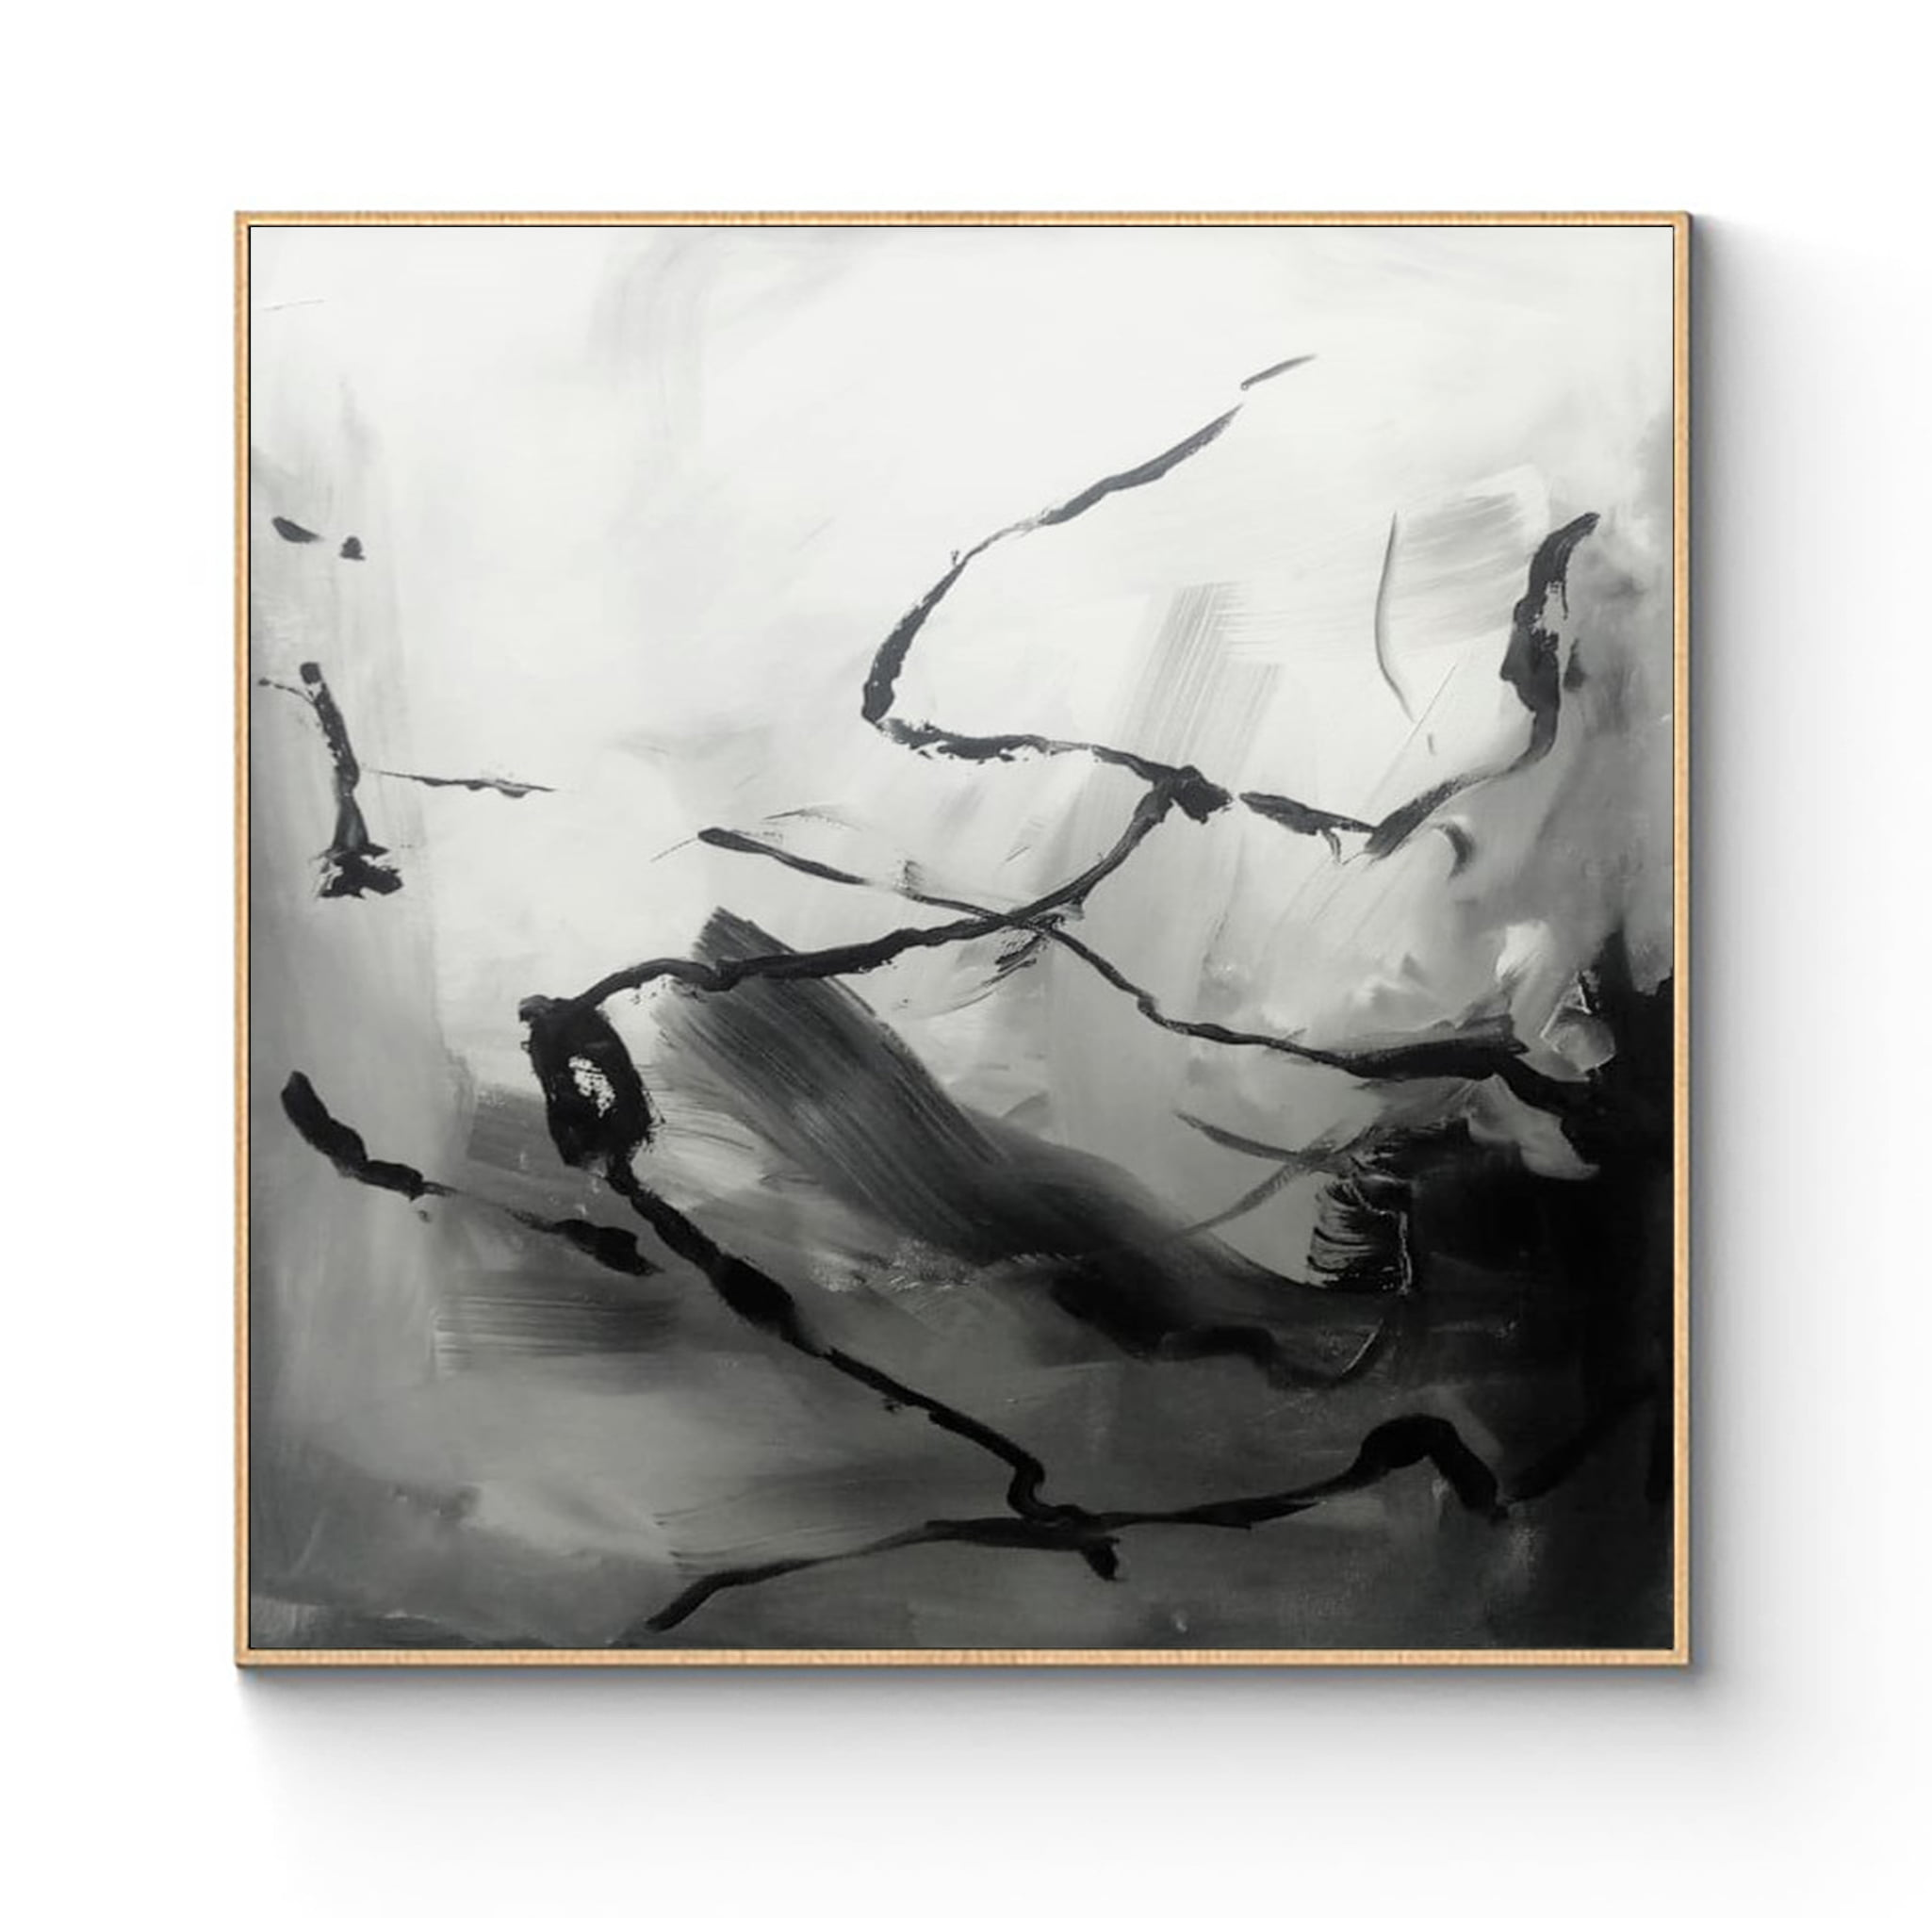 Black and white abstract art by Ron Deri